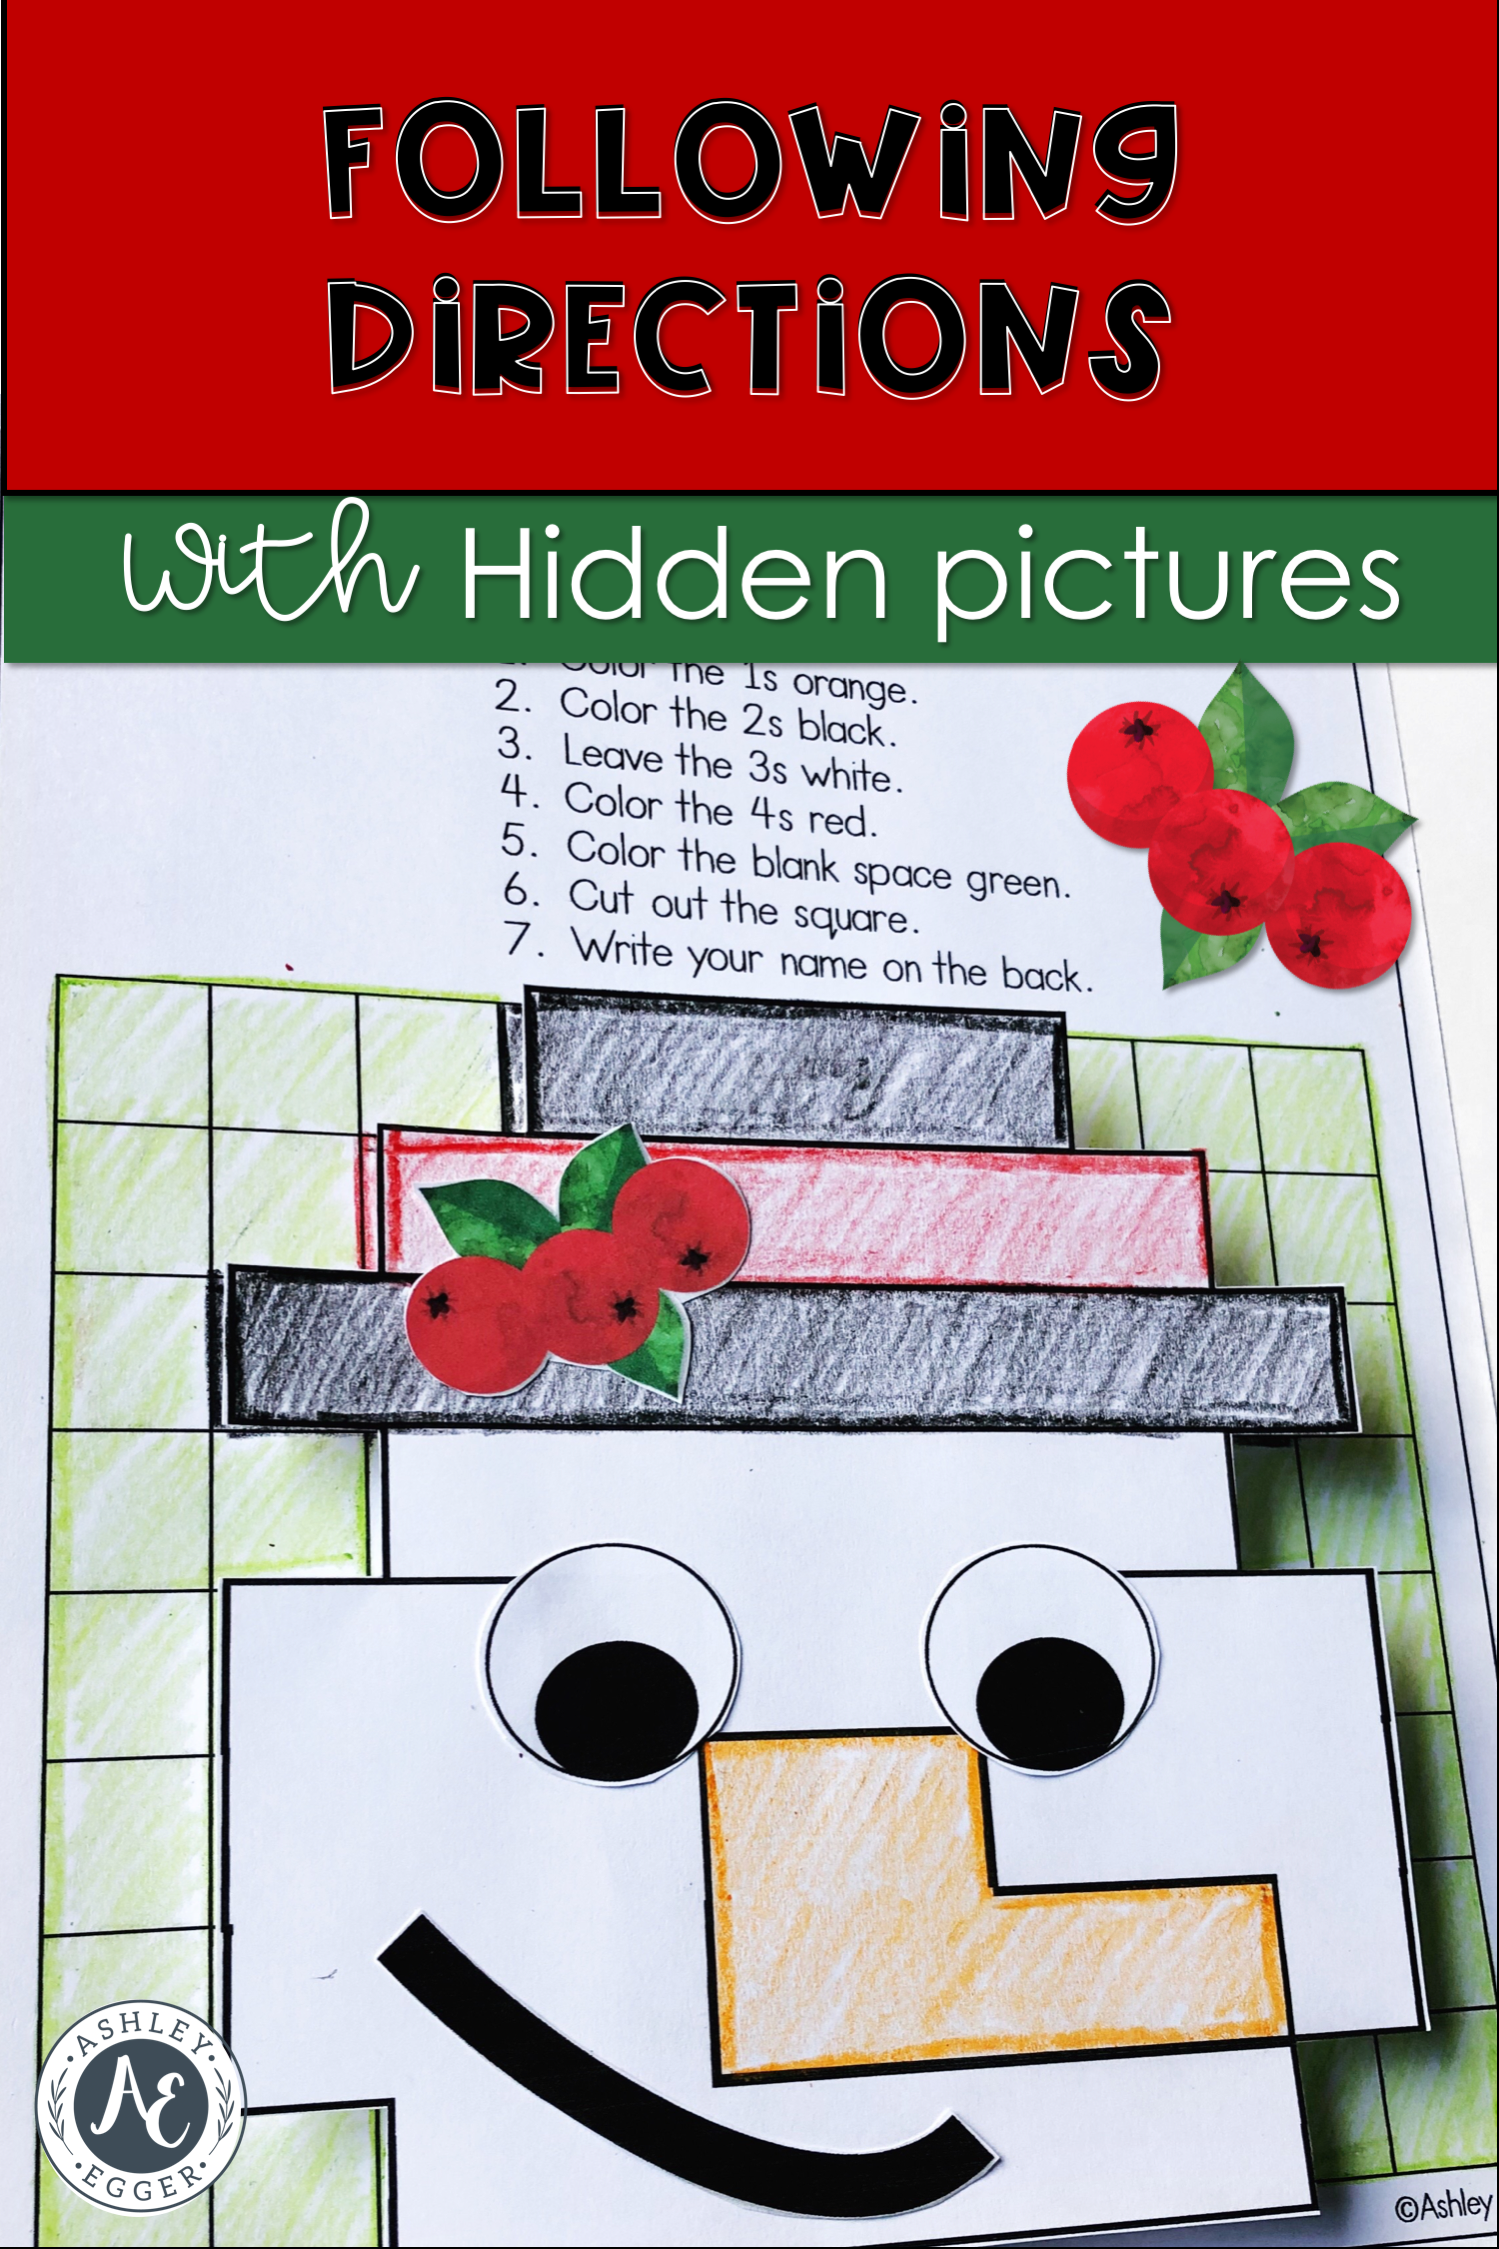 Christmas Hidden Pictures Targeting Following Directions